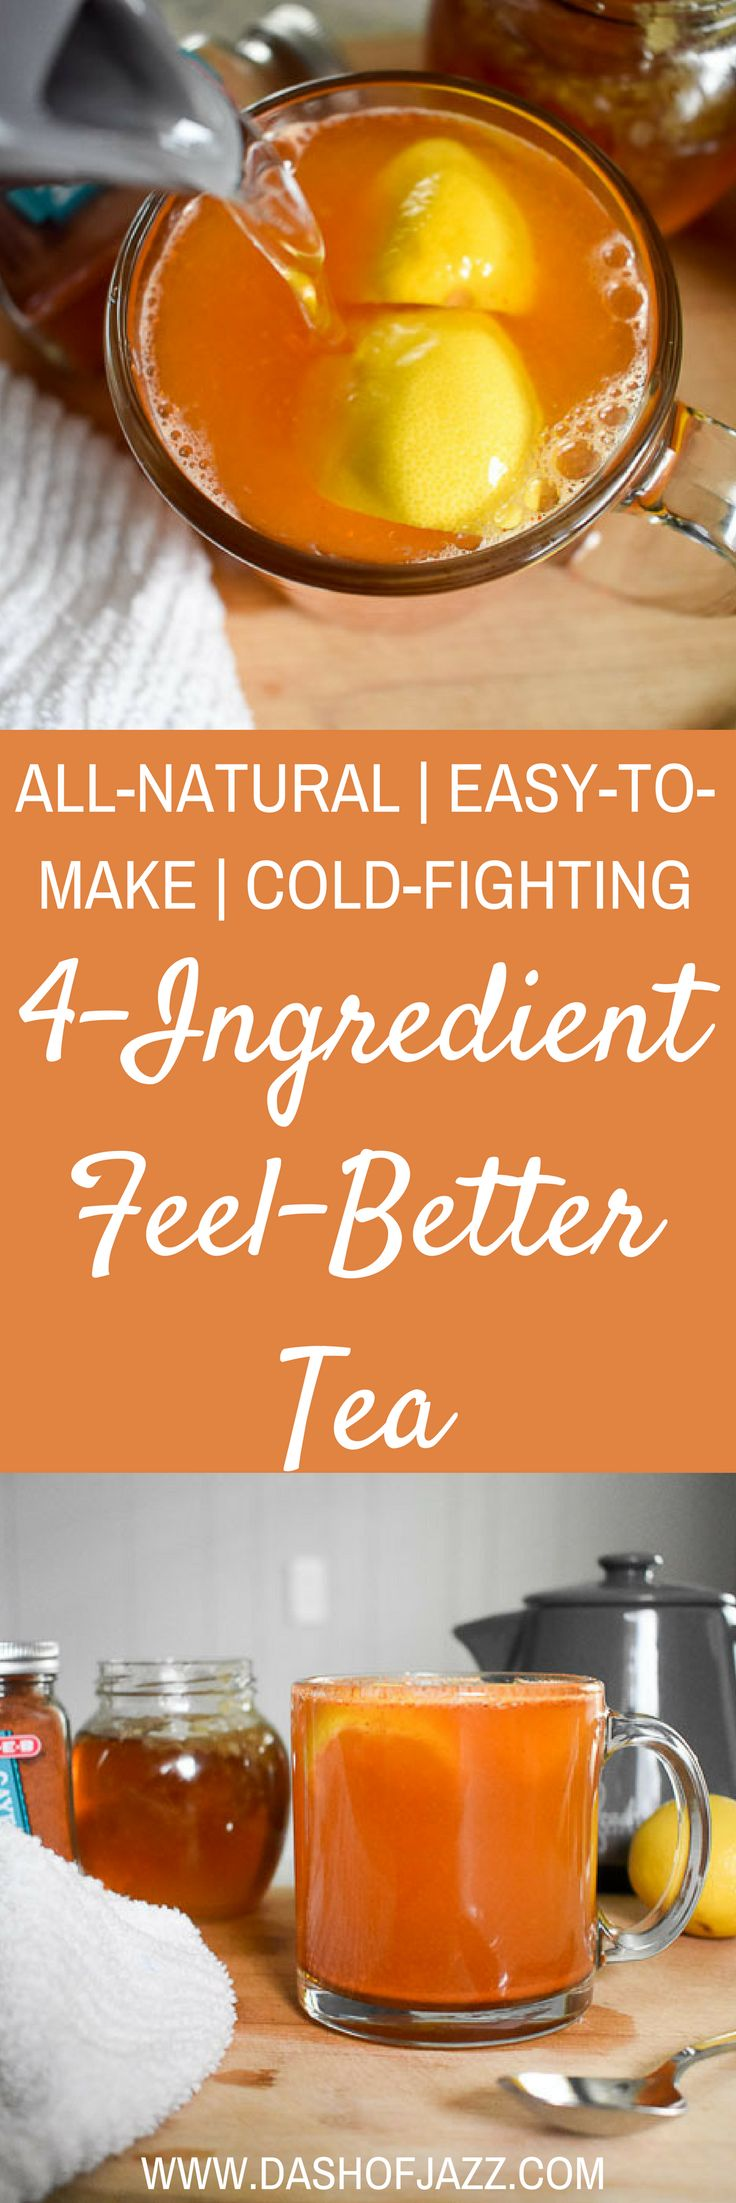 4-ingredient feel-better tea is an all natural homemade cold and cough fighter made simply with just a few common household ingredients. Recipe and tutorial by Dash of Jazz via @dashofjazzblog